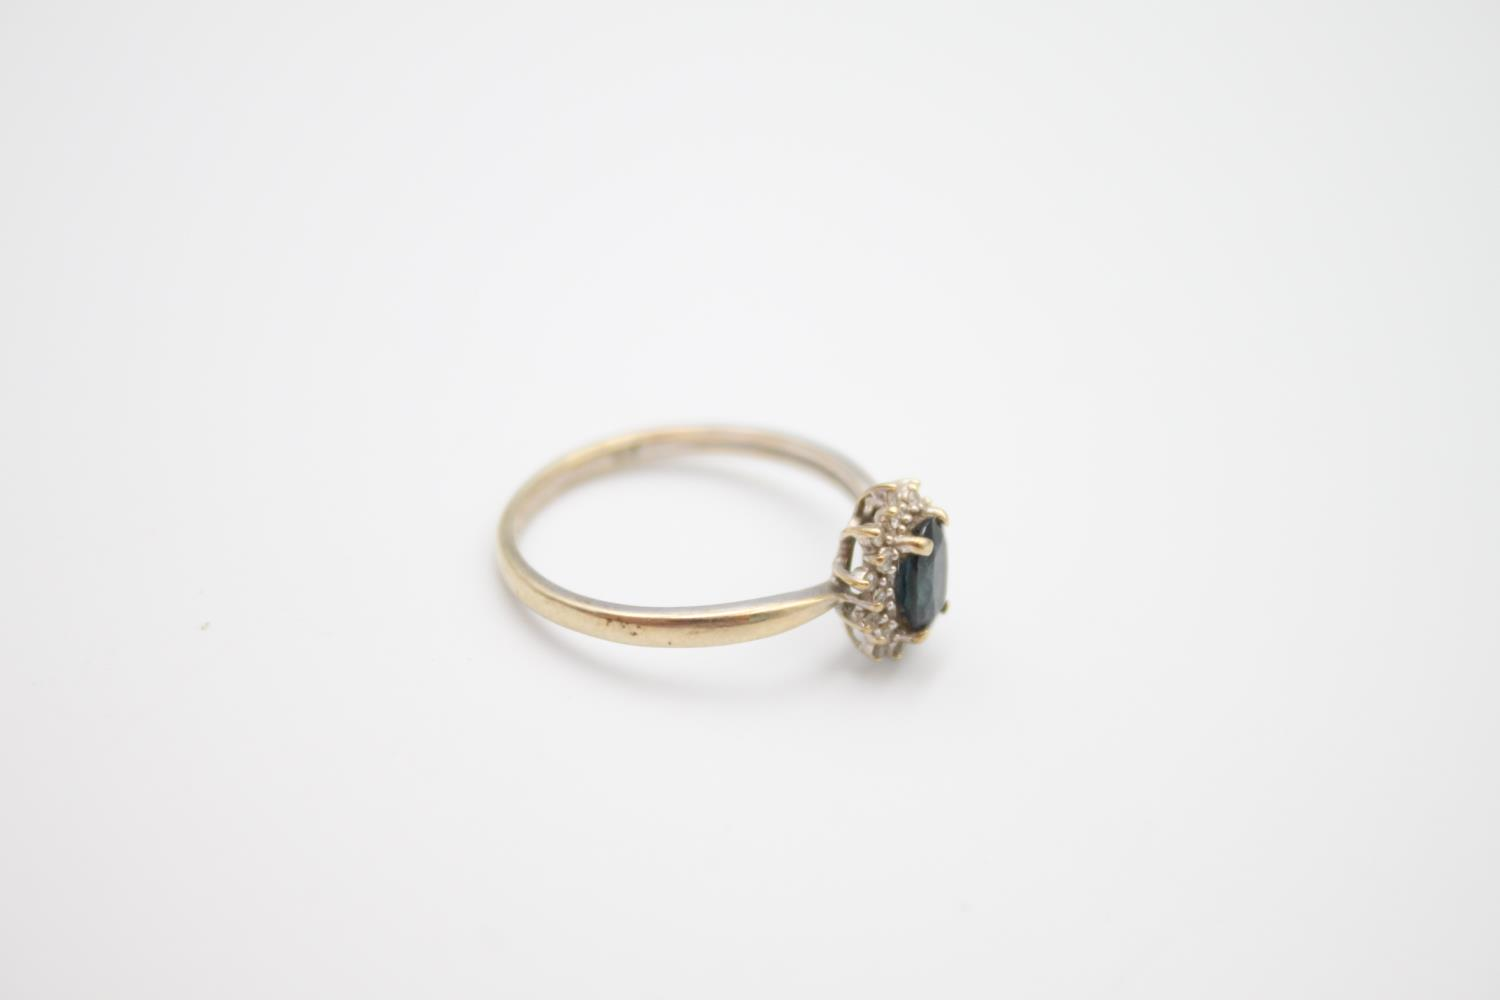 vintage 9ct gold sapphire & diamond halo ring 1.7g Size M - Image 4 of 5